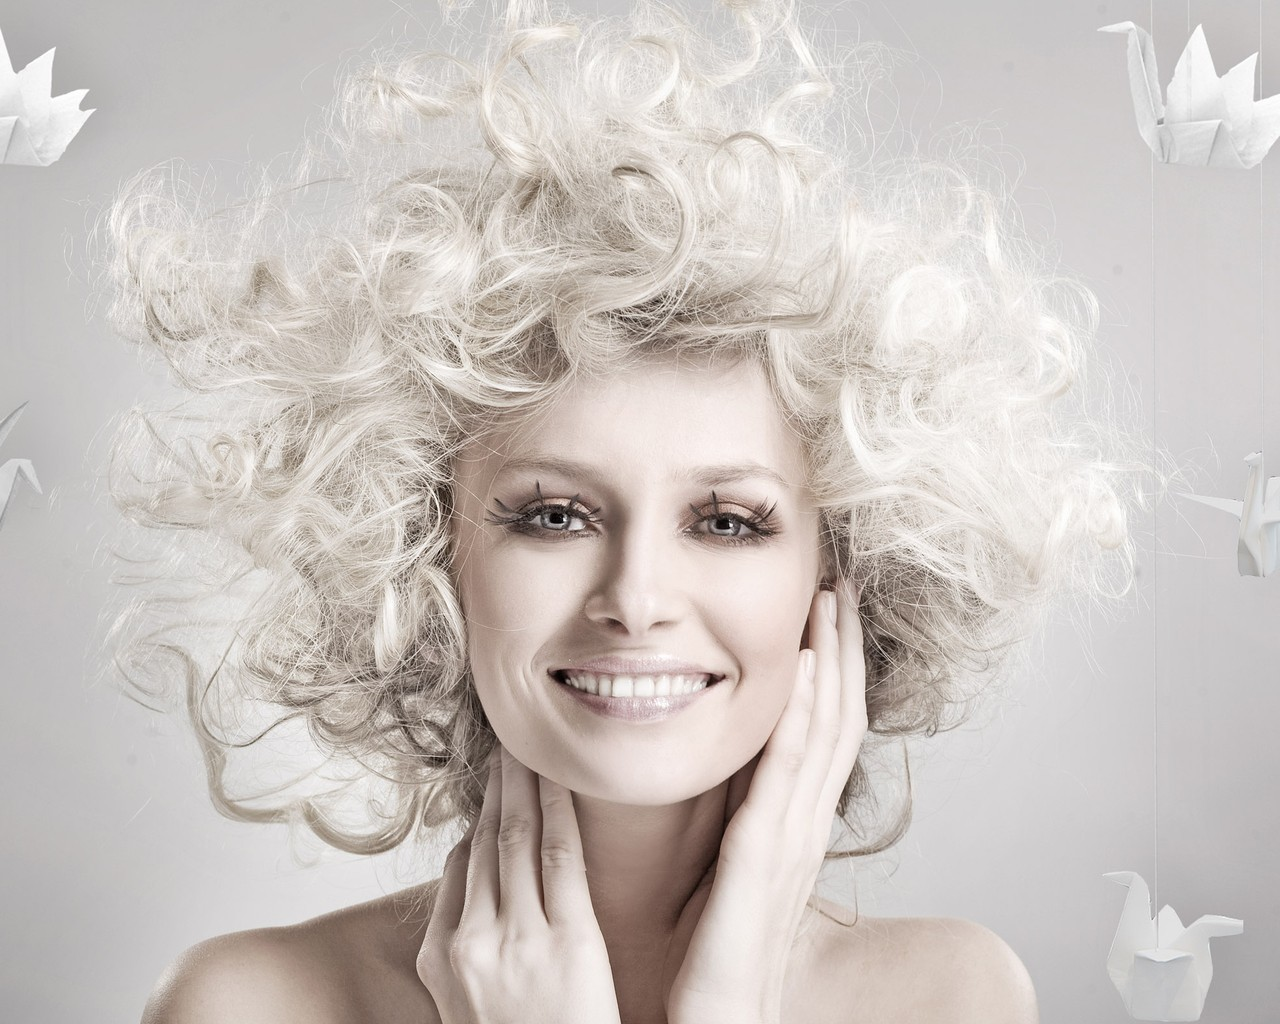 models smiling curly hair HD Wallpaper